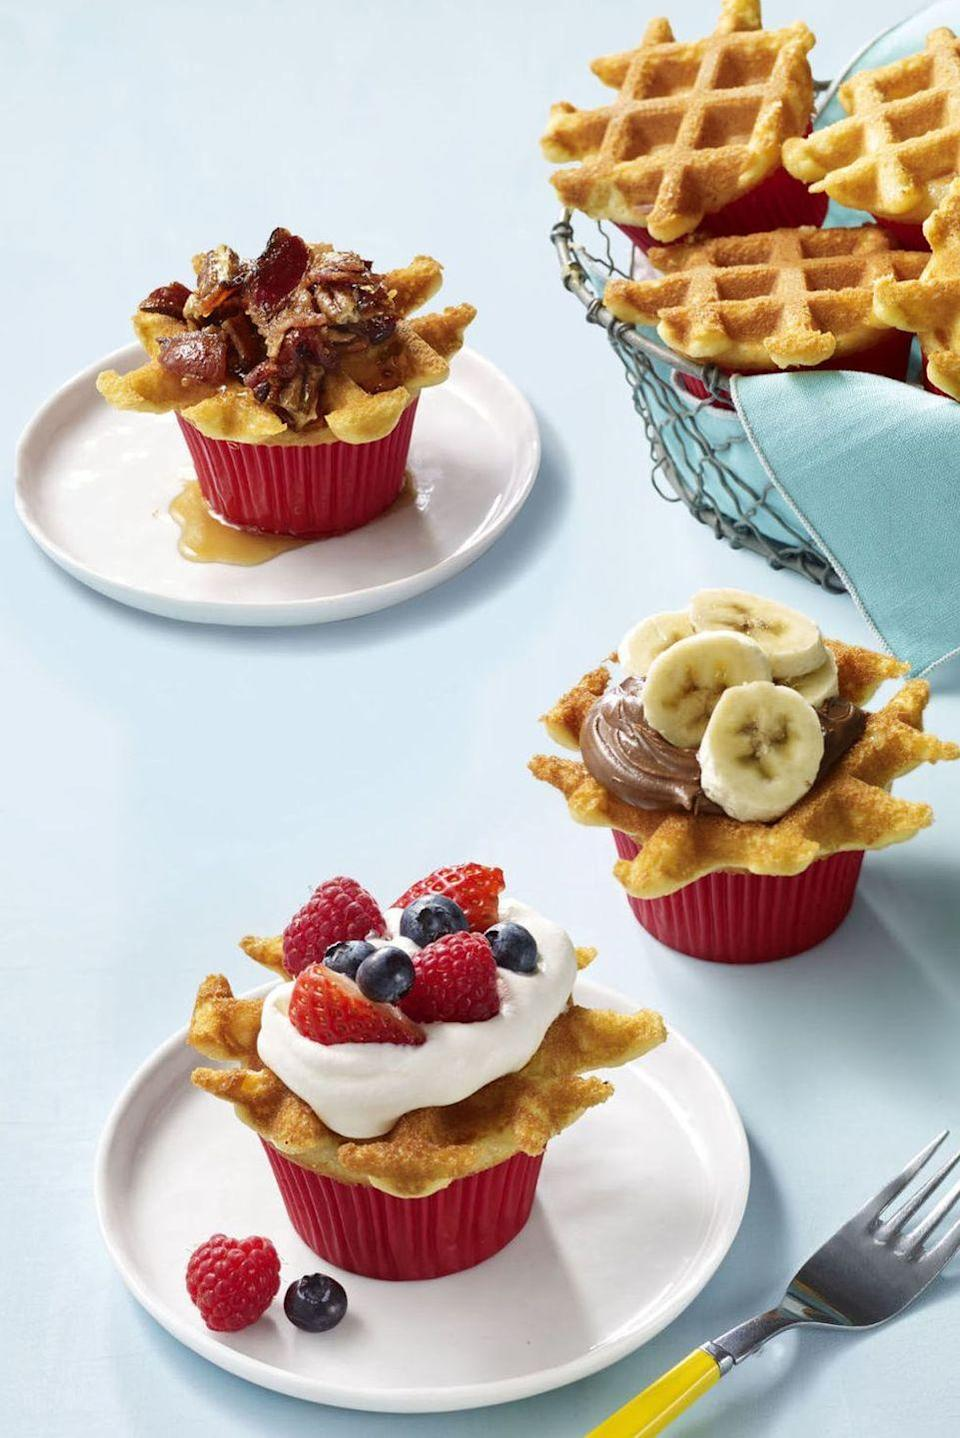 """<p>If you're looking for the perfect way to start off your 4th (and a great excuse to eat cupcakes for <a href=""""https://www.goodhousekeeping.com/food-recipes/easy/g871/quick-breakfasts/"""" rel=""""nofollow noopener"""" target=""""_blank"""" data-ylk=""""slk:breakfast"""" class=""""link rapid-noclick-resp"""">breakfast</a>), look no further than these delicious """"wafflecakes"""" topped with strawberries, blueberries, and whatever else your heart desires.<br></p><p><em><a href=""""https://www.womansday.com/food-recipes/food-drinks/recipes/a57925/wafflecakes-recipe/"""" rel=""""nofollow noopener"""" target=""""_blank"""" data-ylk=""""slk:Get the recipe from Woman's Day »"""" class=""""link rapid-noclick-resp"""">Get the recipe from Woman's Day »</a></em></p>"""